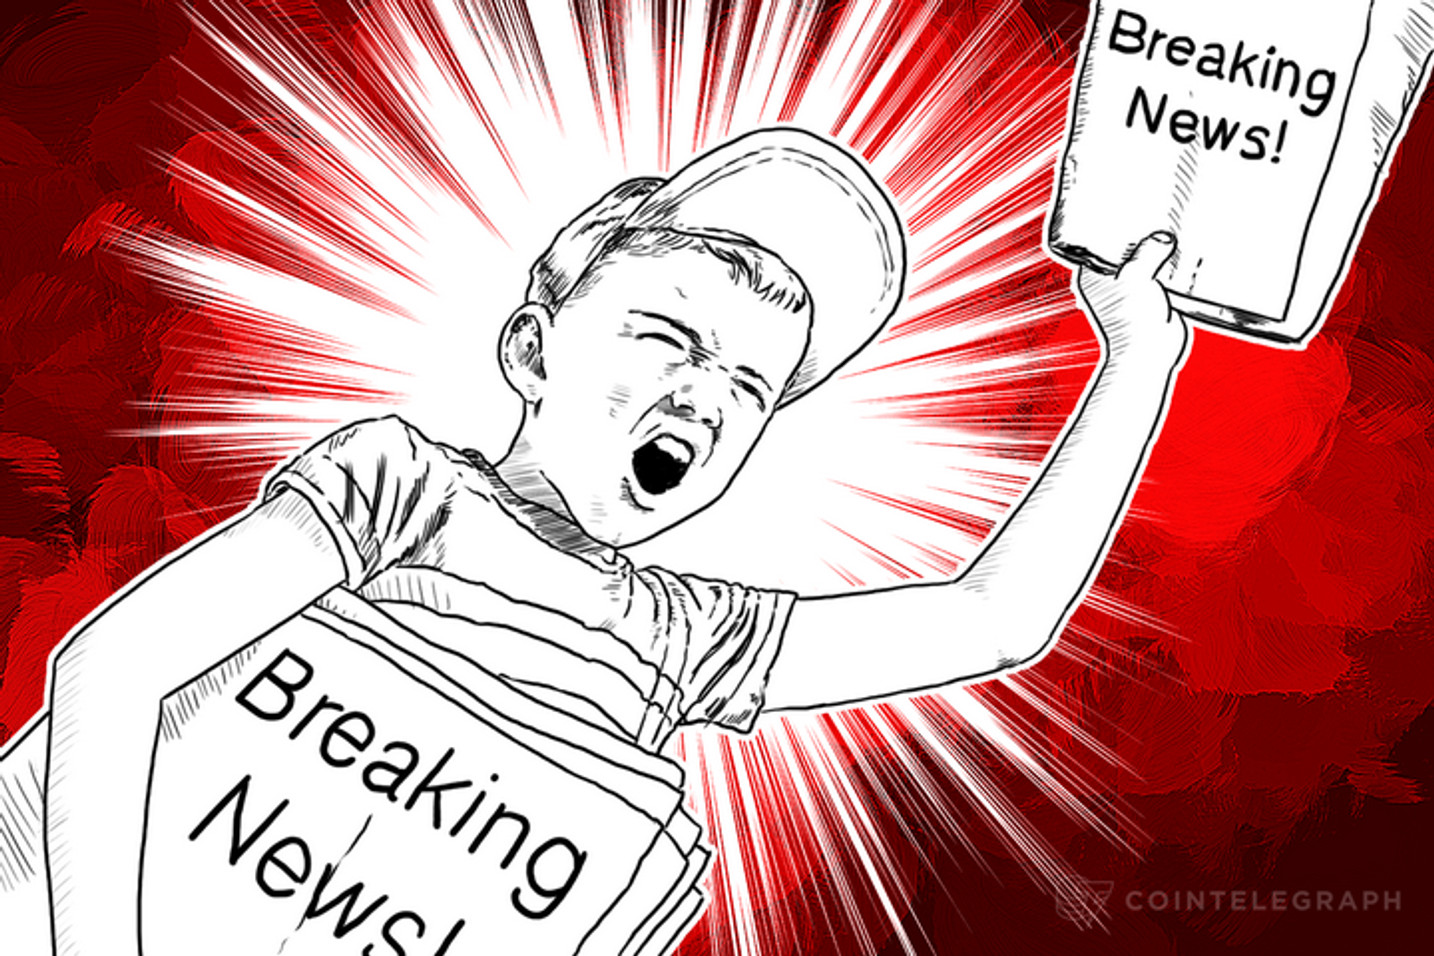 Chinese Exchange Gets 'Goxed' for 1,000 bitcoins (UPDATE: Company Responds)